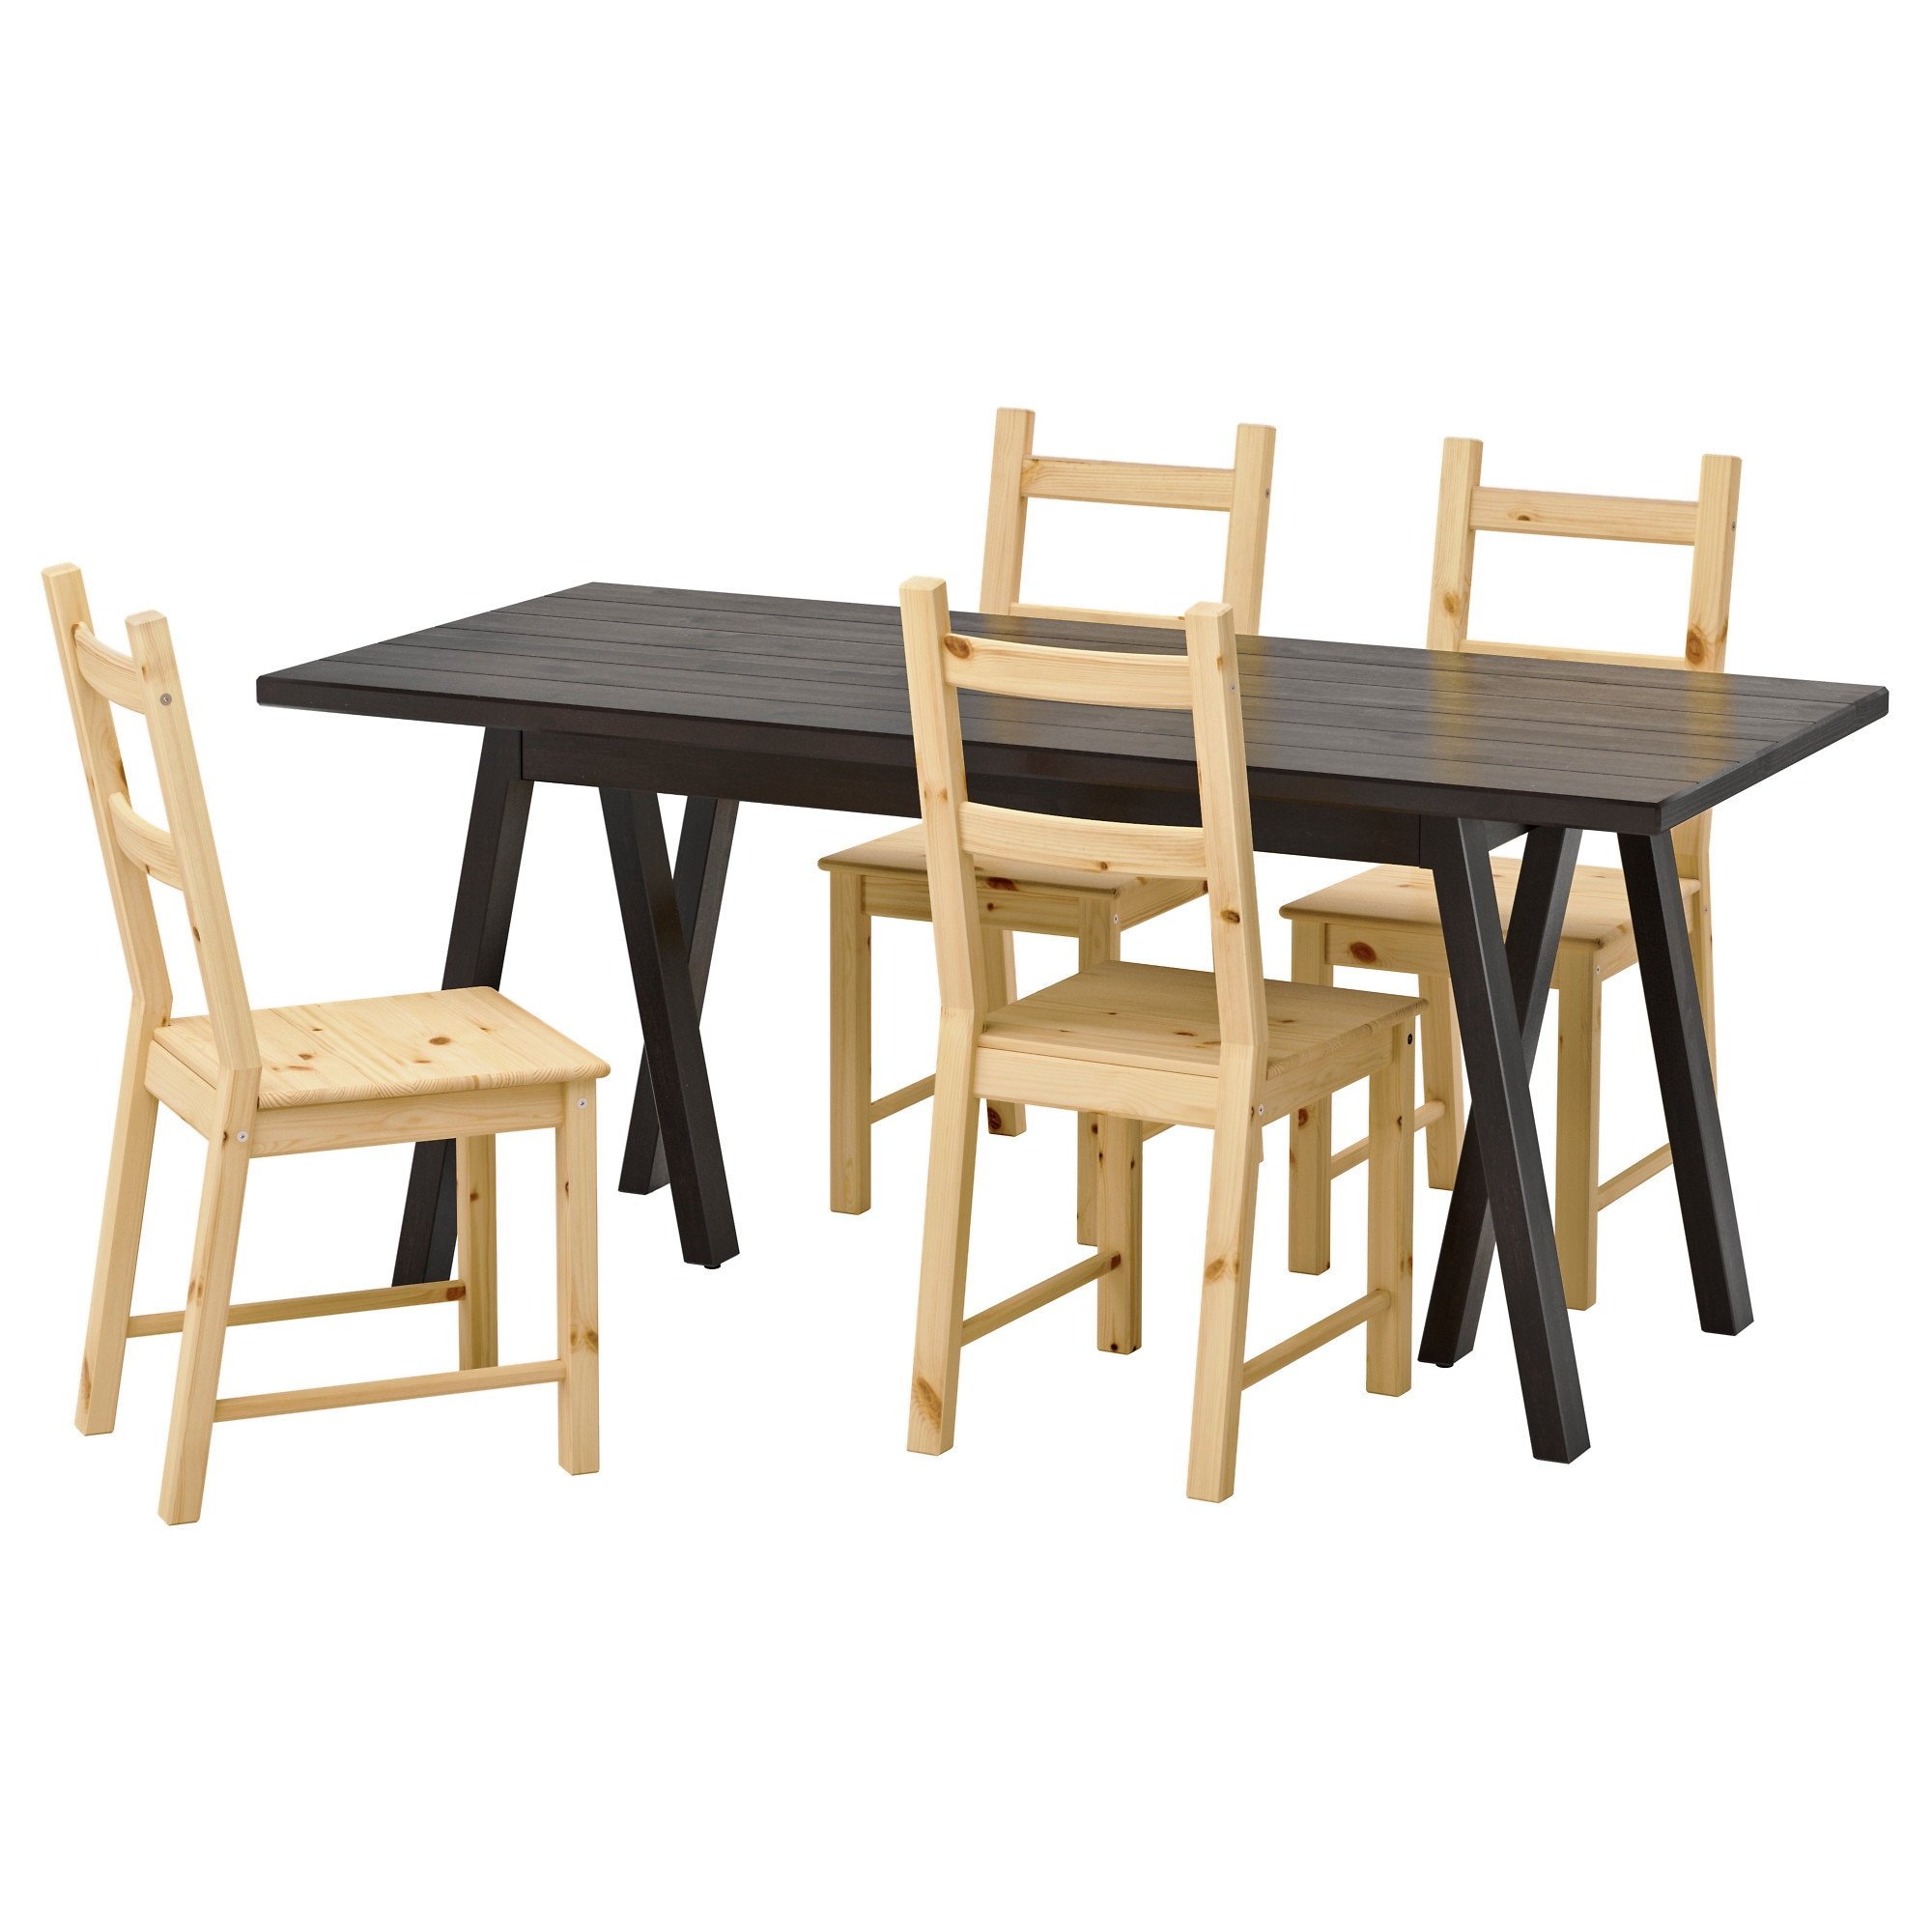 Dining table with chairs - Ryggestad Grebbestad Ivar Table And 4 Chairs Black Pine Length 66